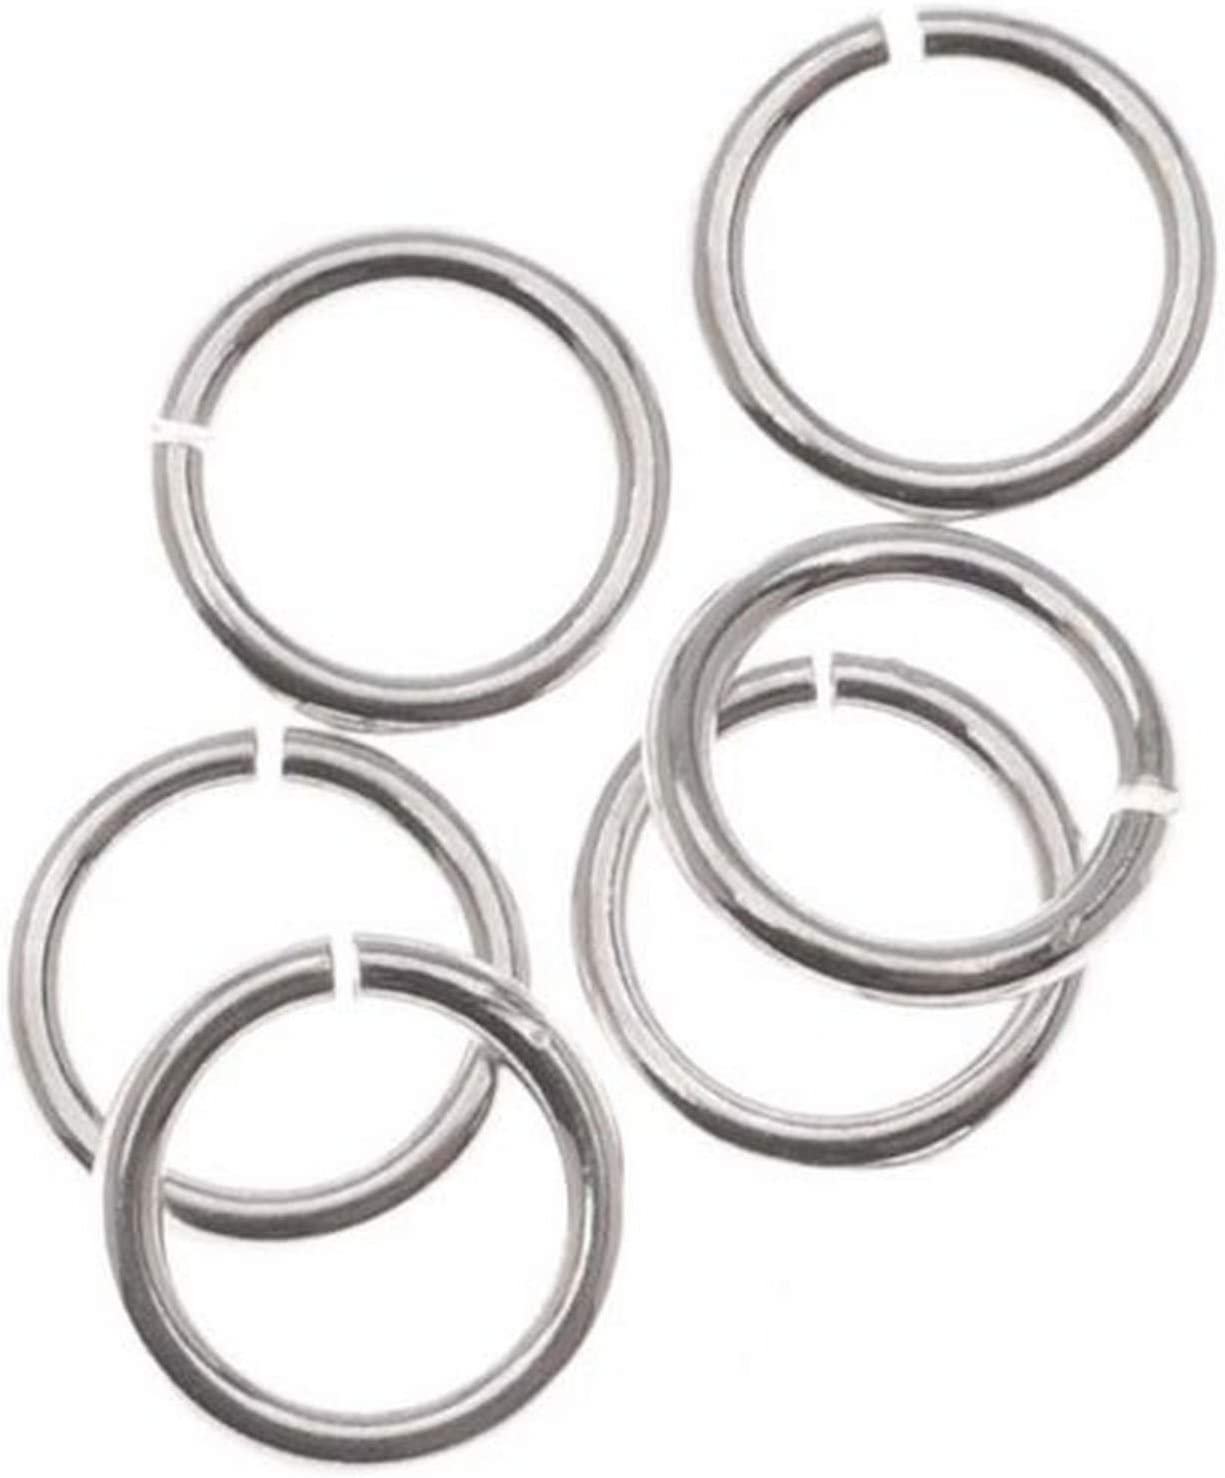 Beadaholique SS JR32 6 10-Piece Sterling 2 Jump Open 6mm Max 82% OFF Rings wholesale